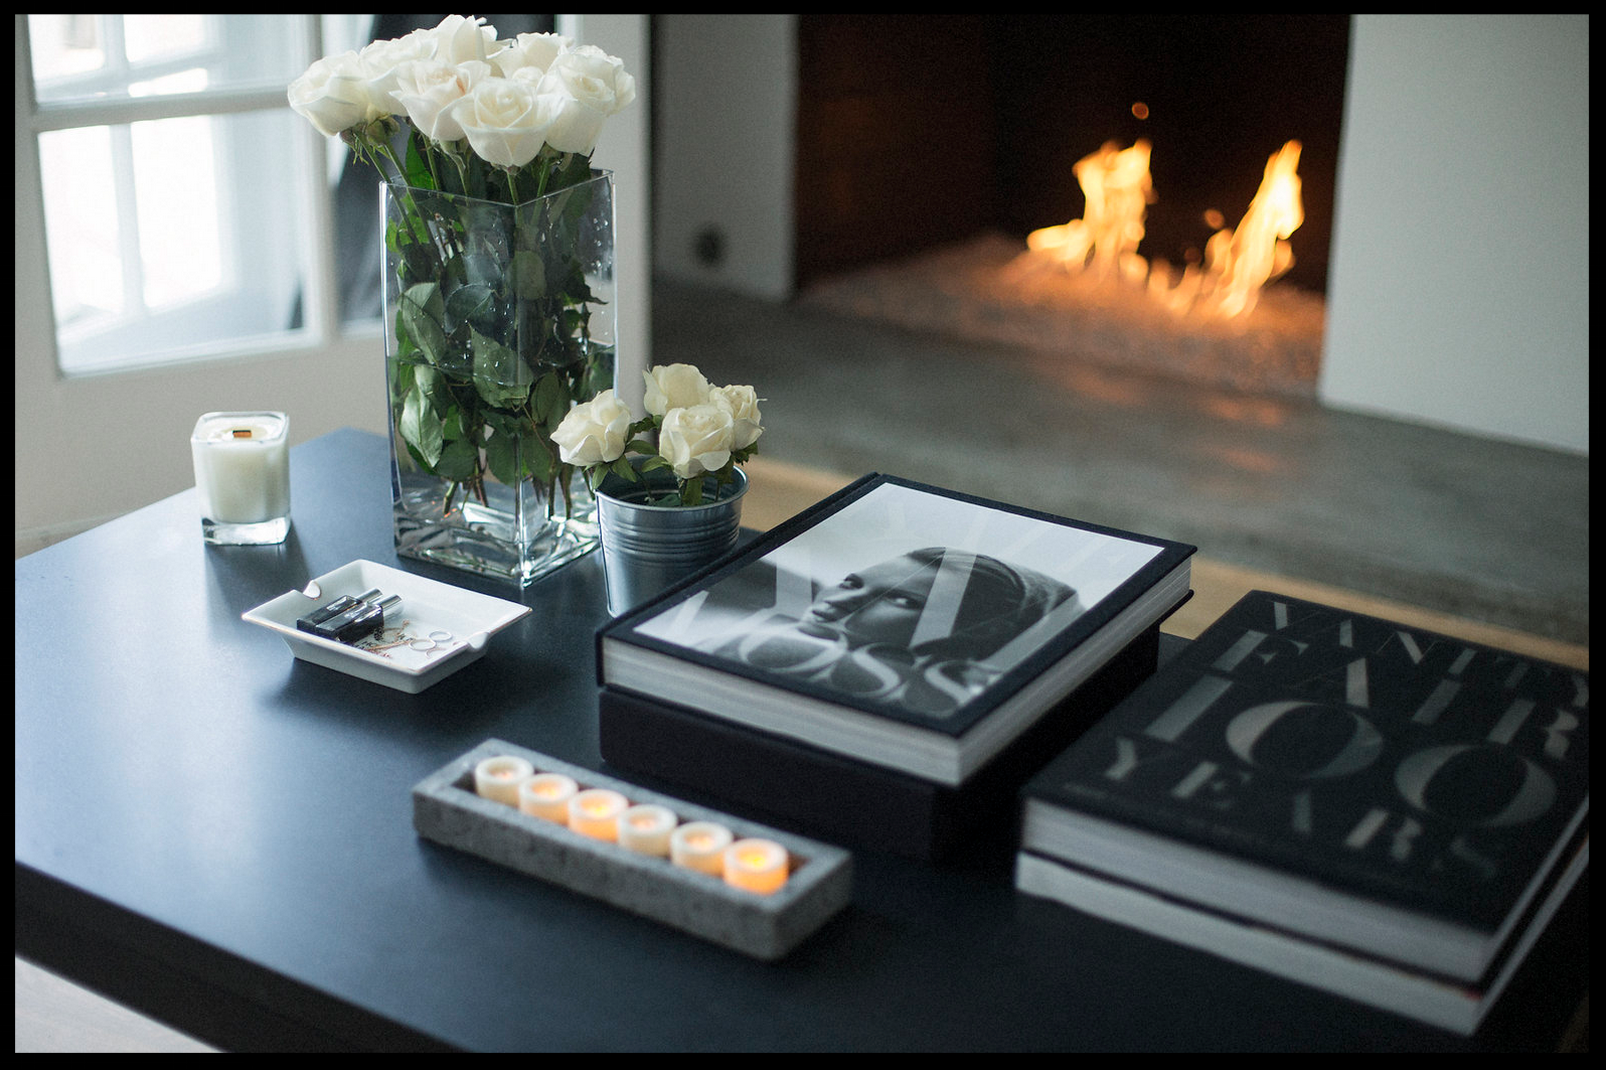 Cute-Chanel-Coffee-Table-Book-Ultimate-Interior-Coffee-Table-Inspiration-with-Chanel-Coffee-Table-Book.jpg.png